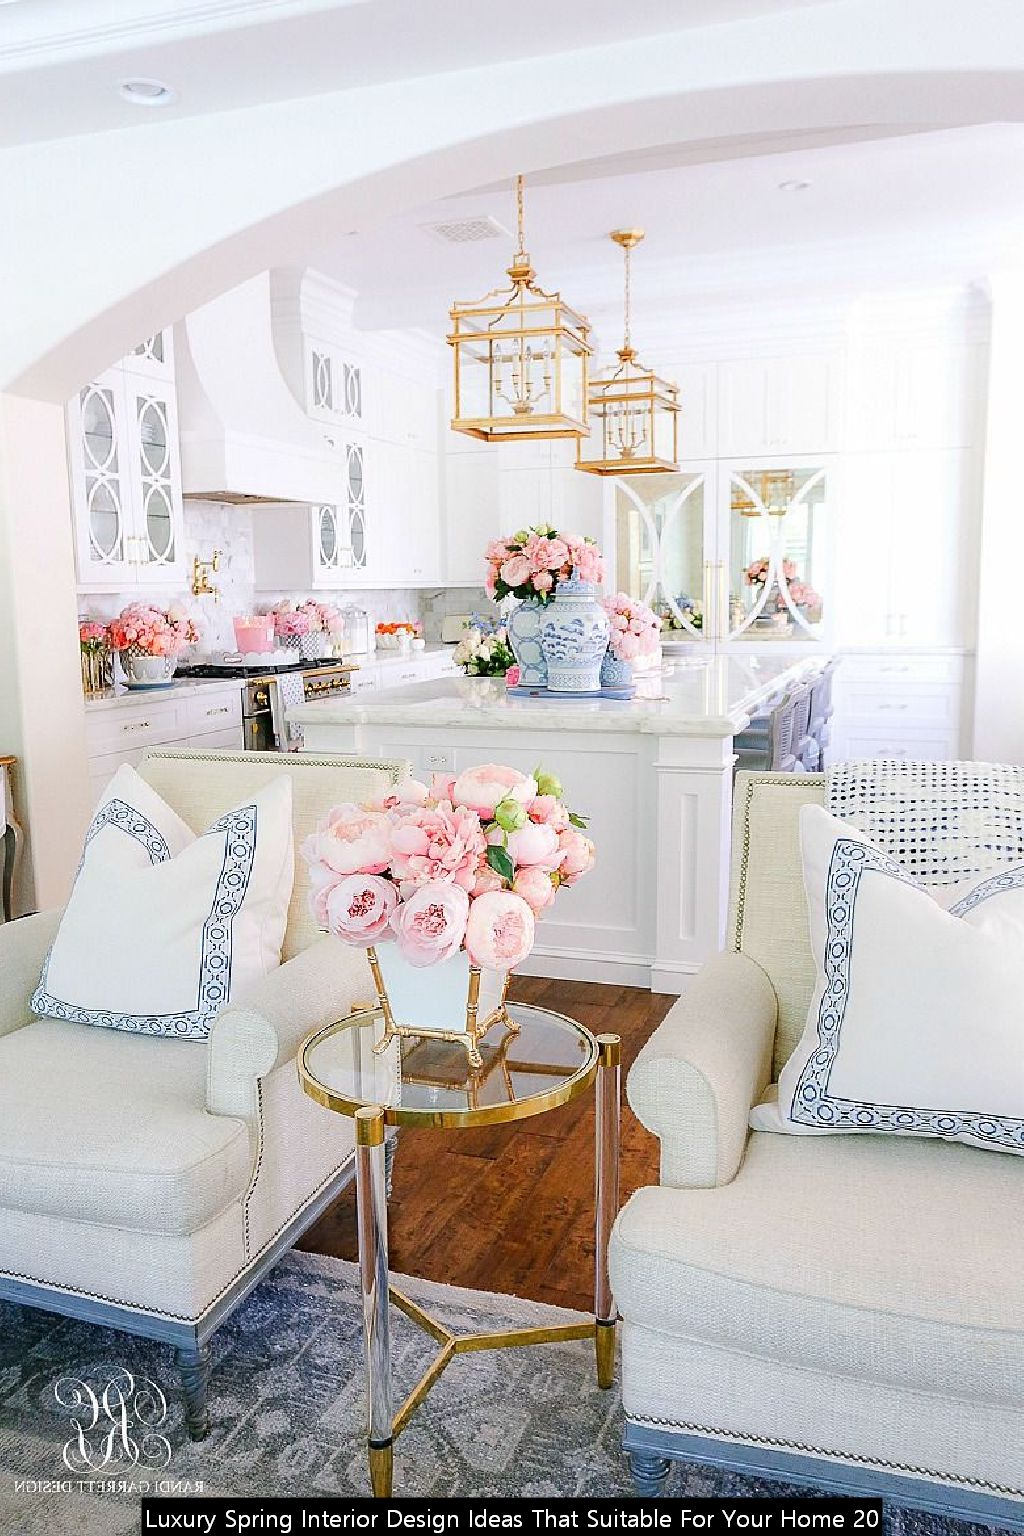 Luxury Spring Interior Design Ideas That Suitable For Your Home 20